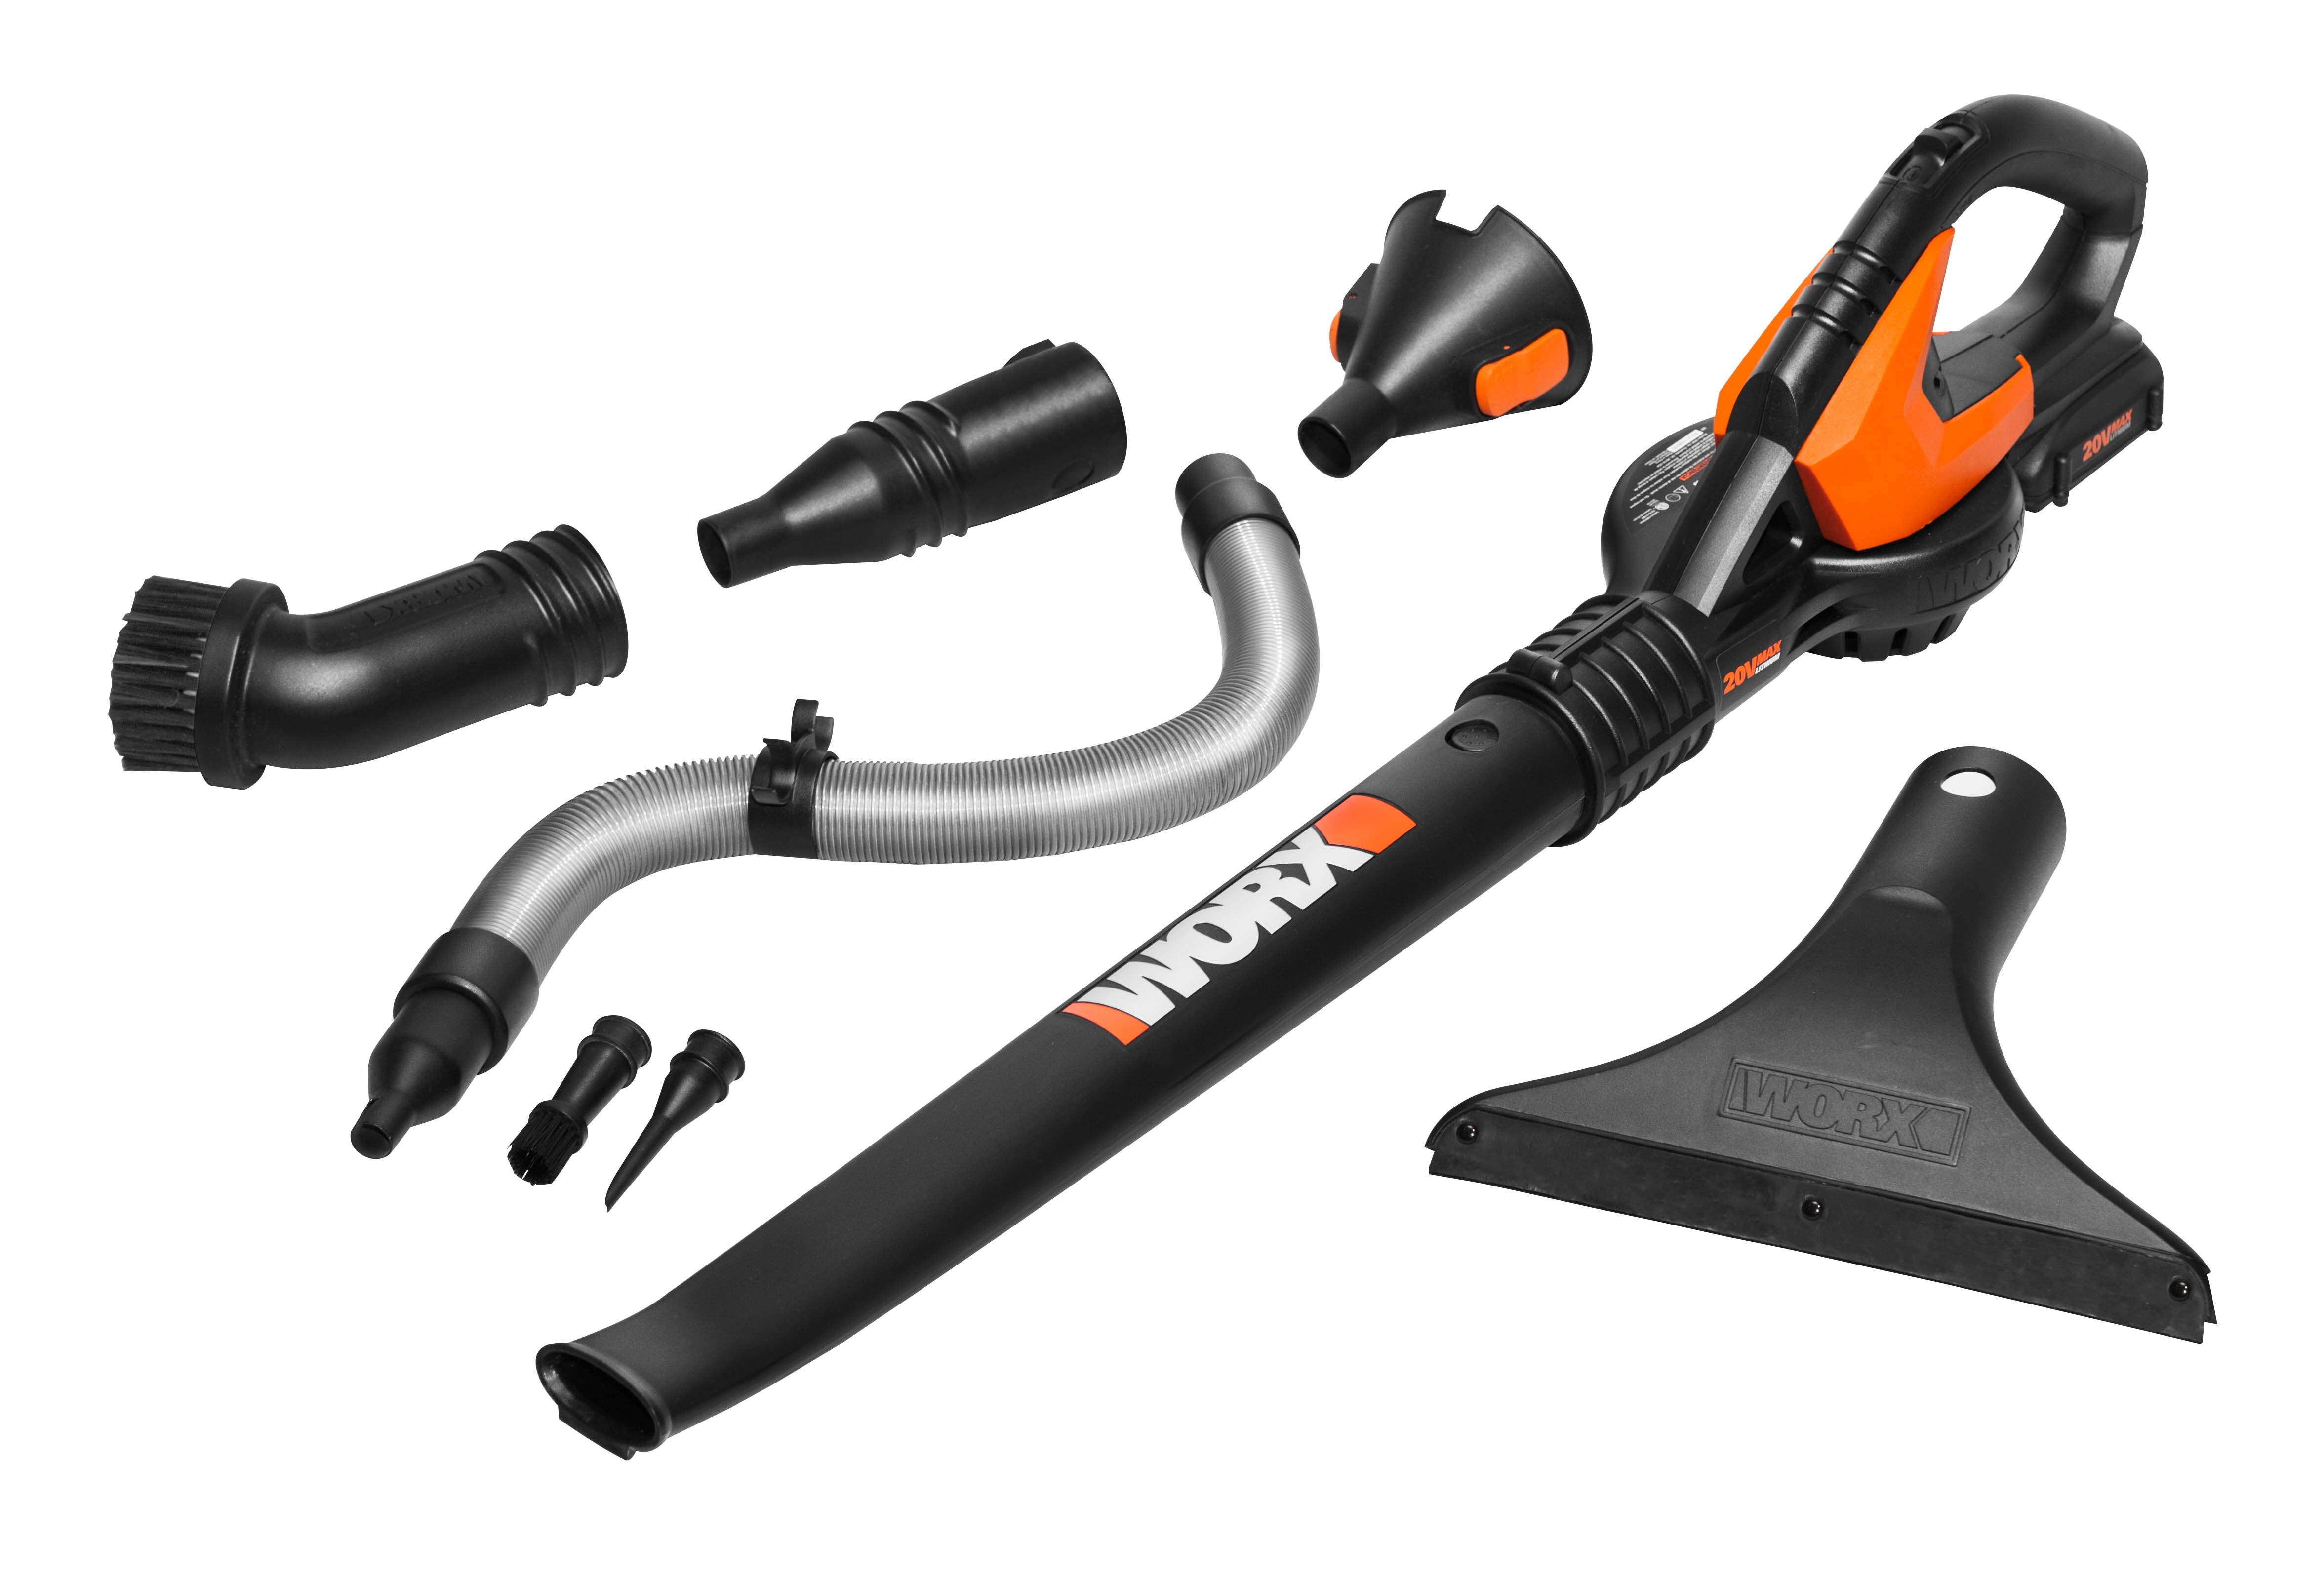 Air Blower Work : Worx air blower sweeper with new attachments stops